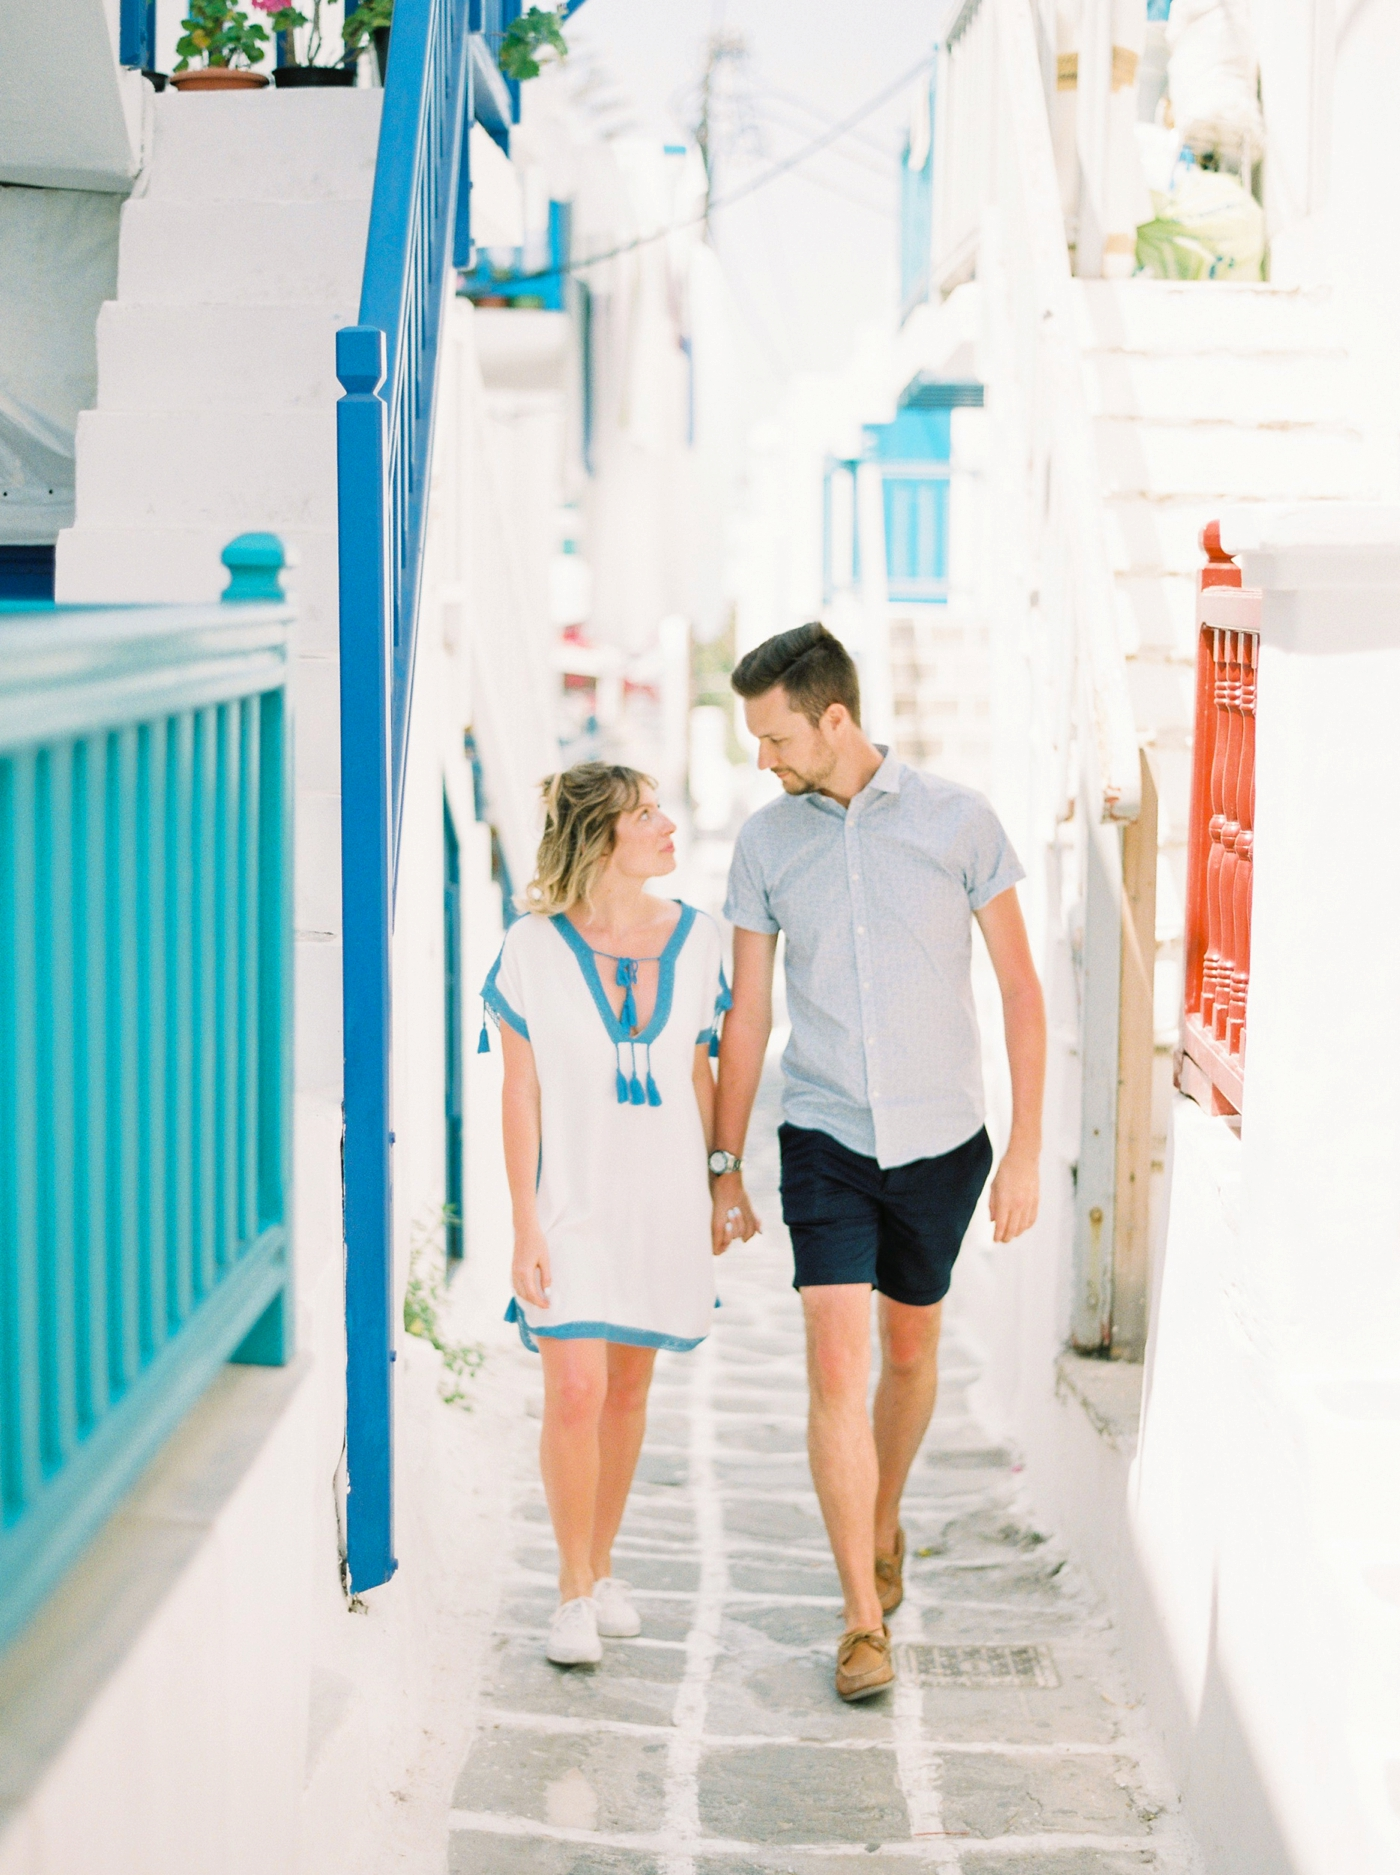 mykonos couples photographer | greece wedding photographers | travel blogger | blue and white streets | justine milton photography